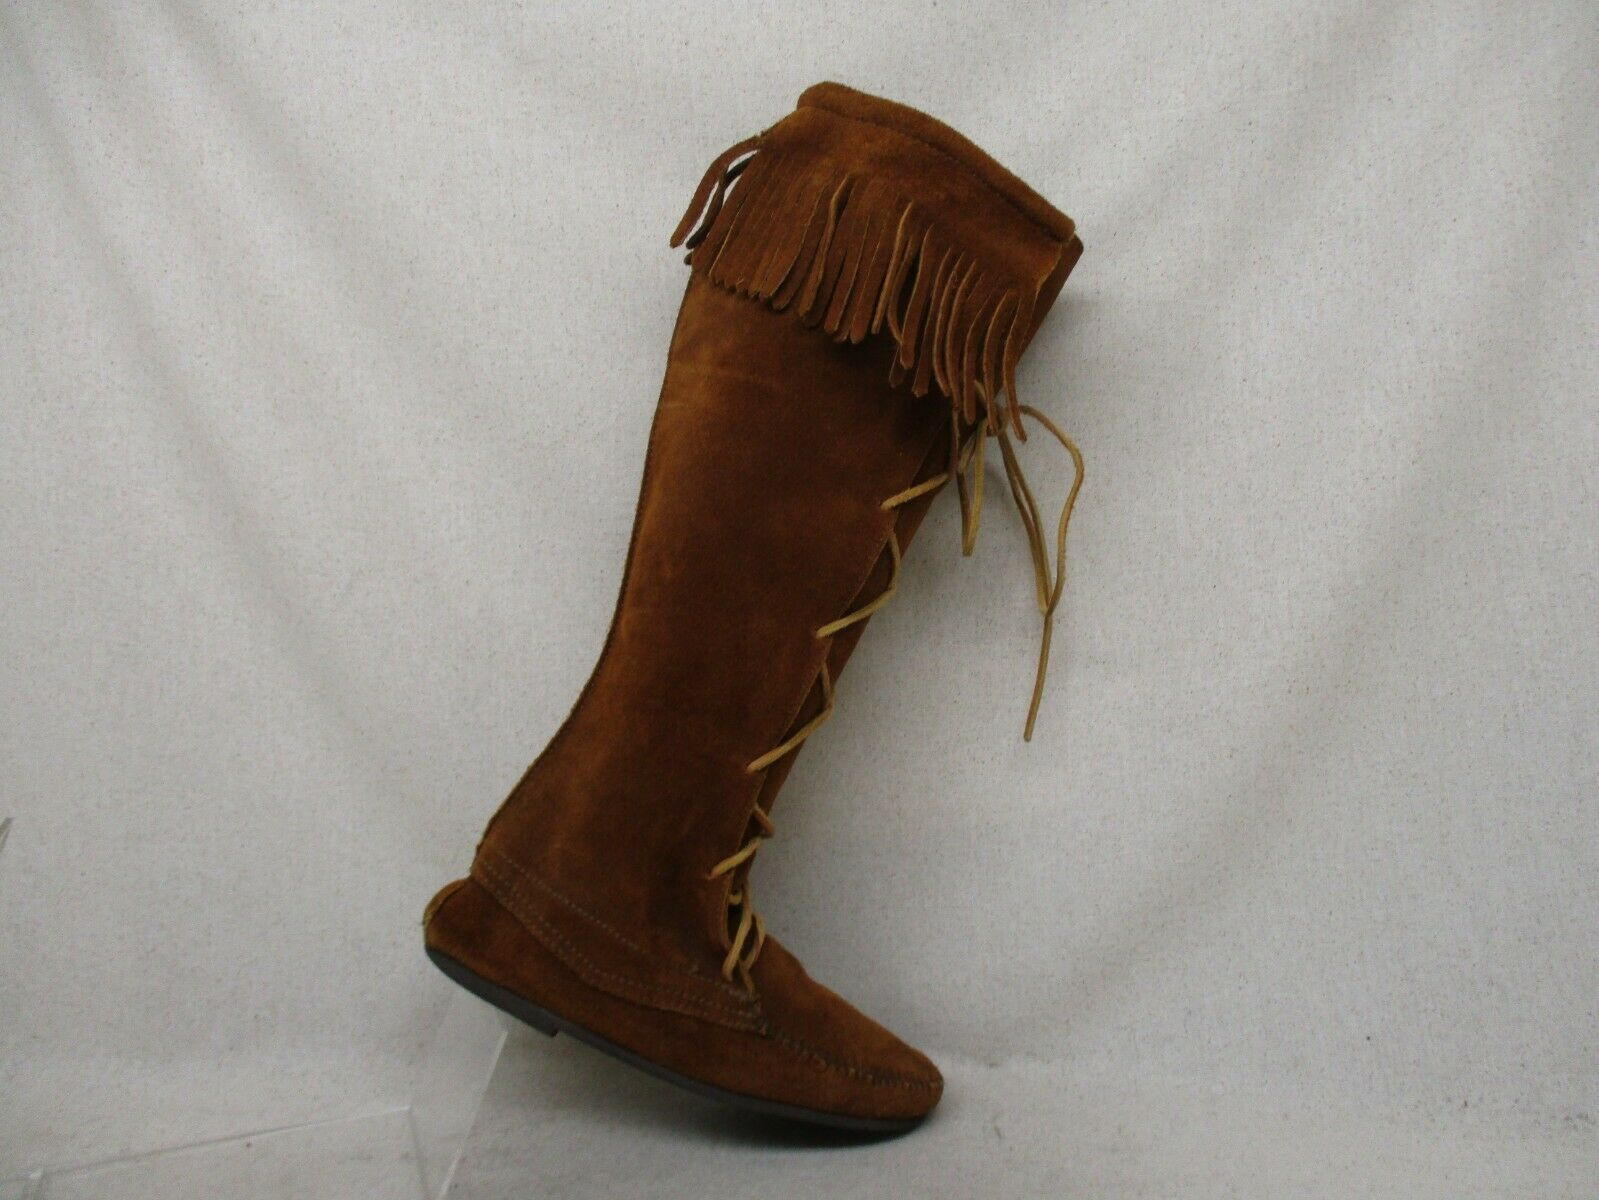 Minnetonka Brown Suede Leather Fringe Lace up Knee High Fashion Boots Size 7